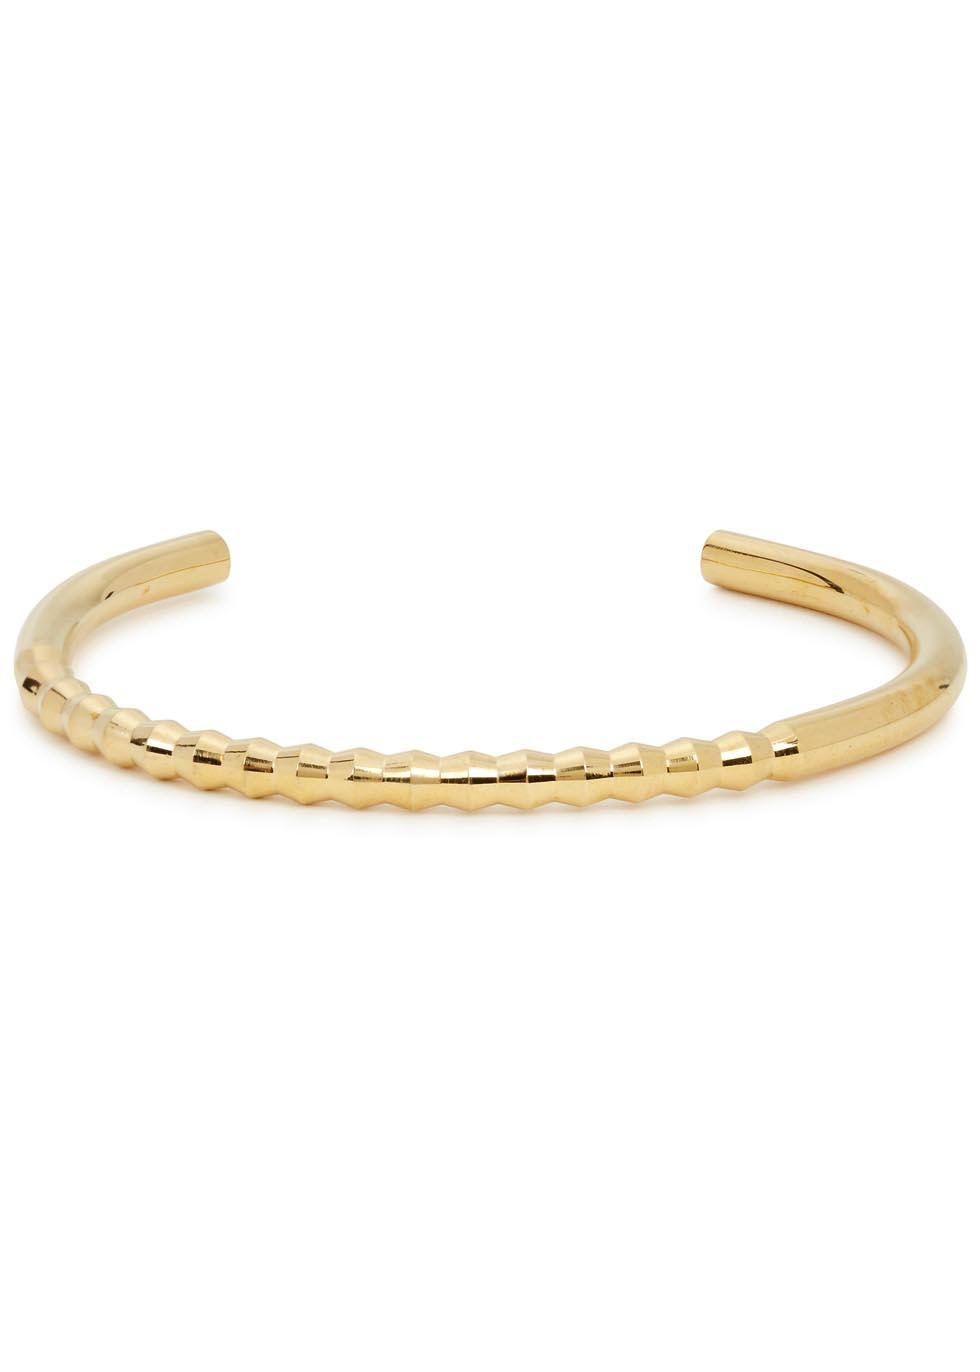 Oscar gold tone brass cuff - Alice Made This